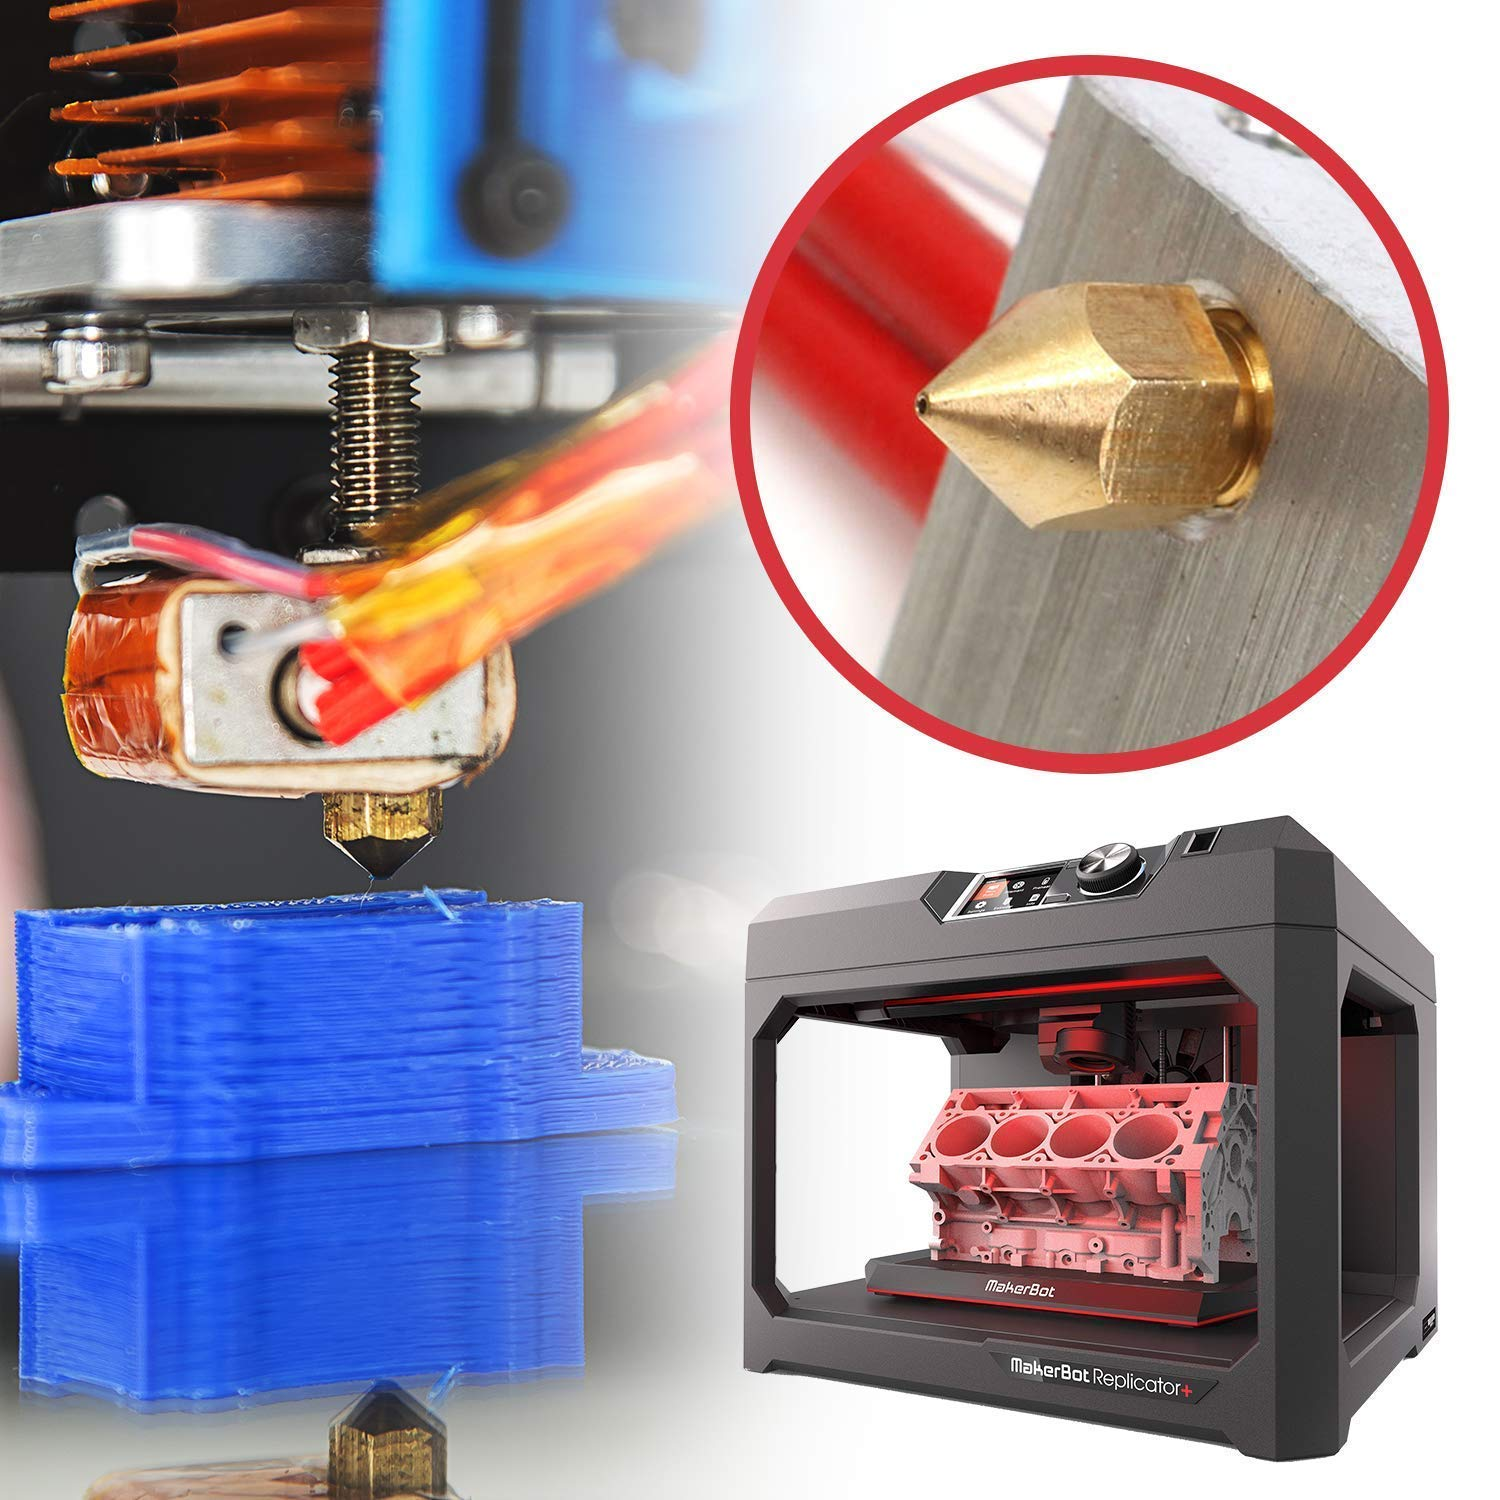 3D Printer Nozzles Brass MK8 Nozzle 0.4mm 0.5mm 0.3mm 0.2mm Extruder Print Head for 1.75mm Printer Makerbot Creality CR-10 16 Pieces